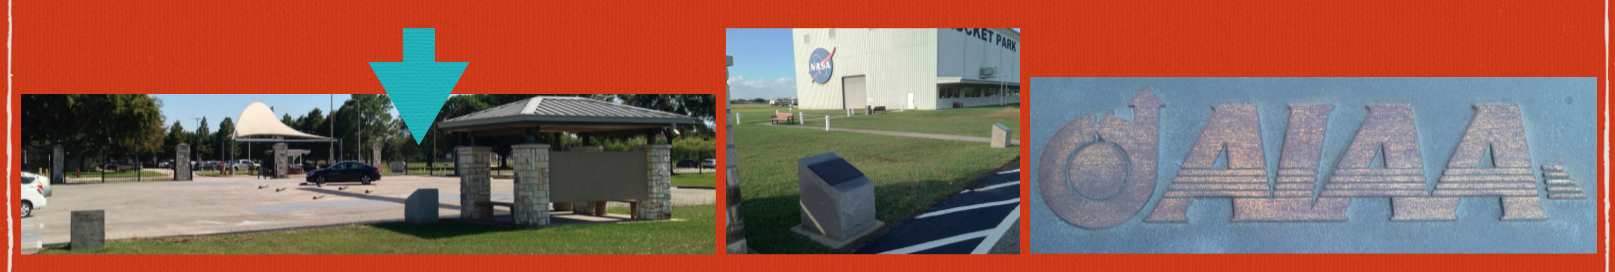 Above: The AIAA Historic Aerospace Sites Johnson Space Center plaque needs polishing! As of November 2015, the lettering is very worn, though other Rocket Park outdoor plaques still look great, such as the Little Joe plaque. Emily Springer sent us a link with instructions for polishing. This is a great project for the AIAA Houston Section History technical committee. The date on the plaque is 2005. We can still read about AIAA Historic Aerospace Sites on an AIAA web page, but the program was stopped, probably due to financial budget troubles. Image credits: Douglas Yazell, using an iPhone 5.